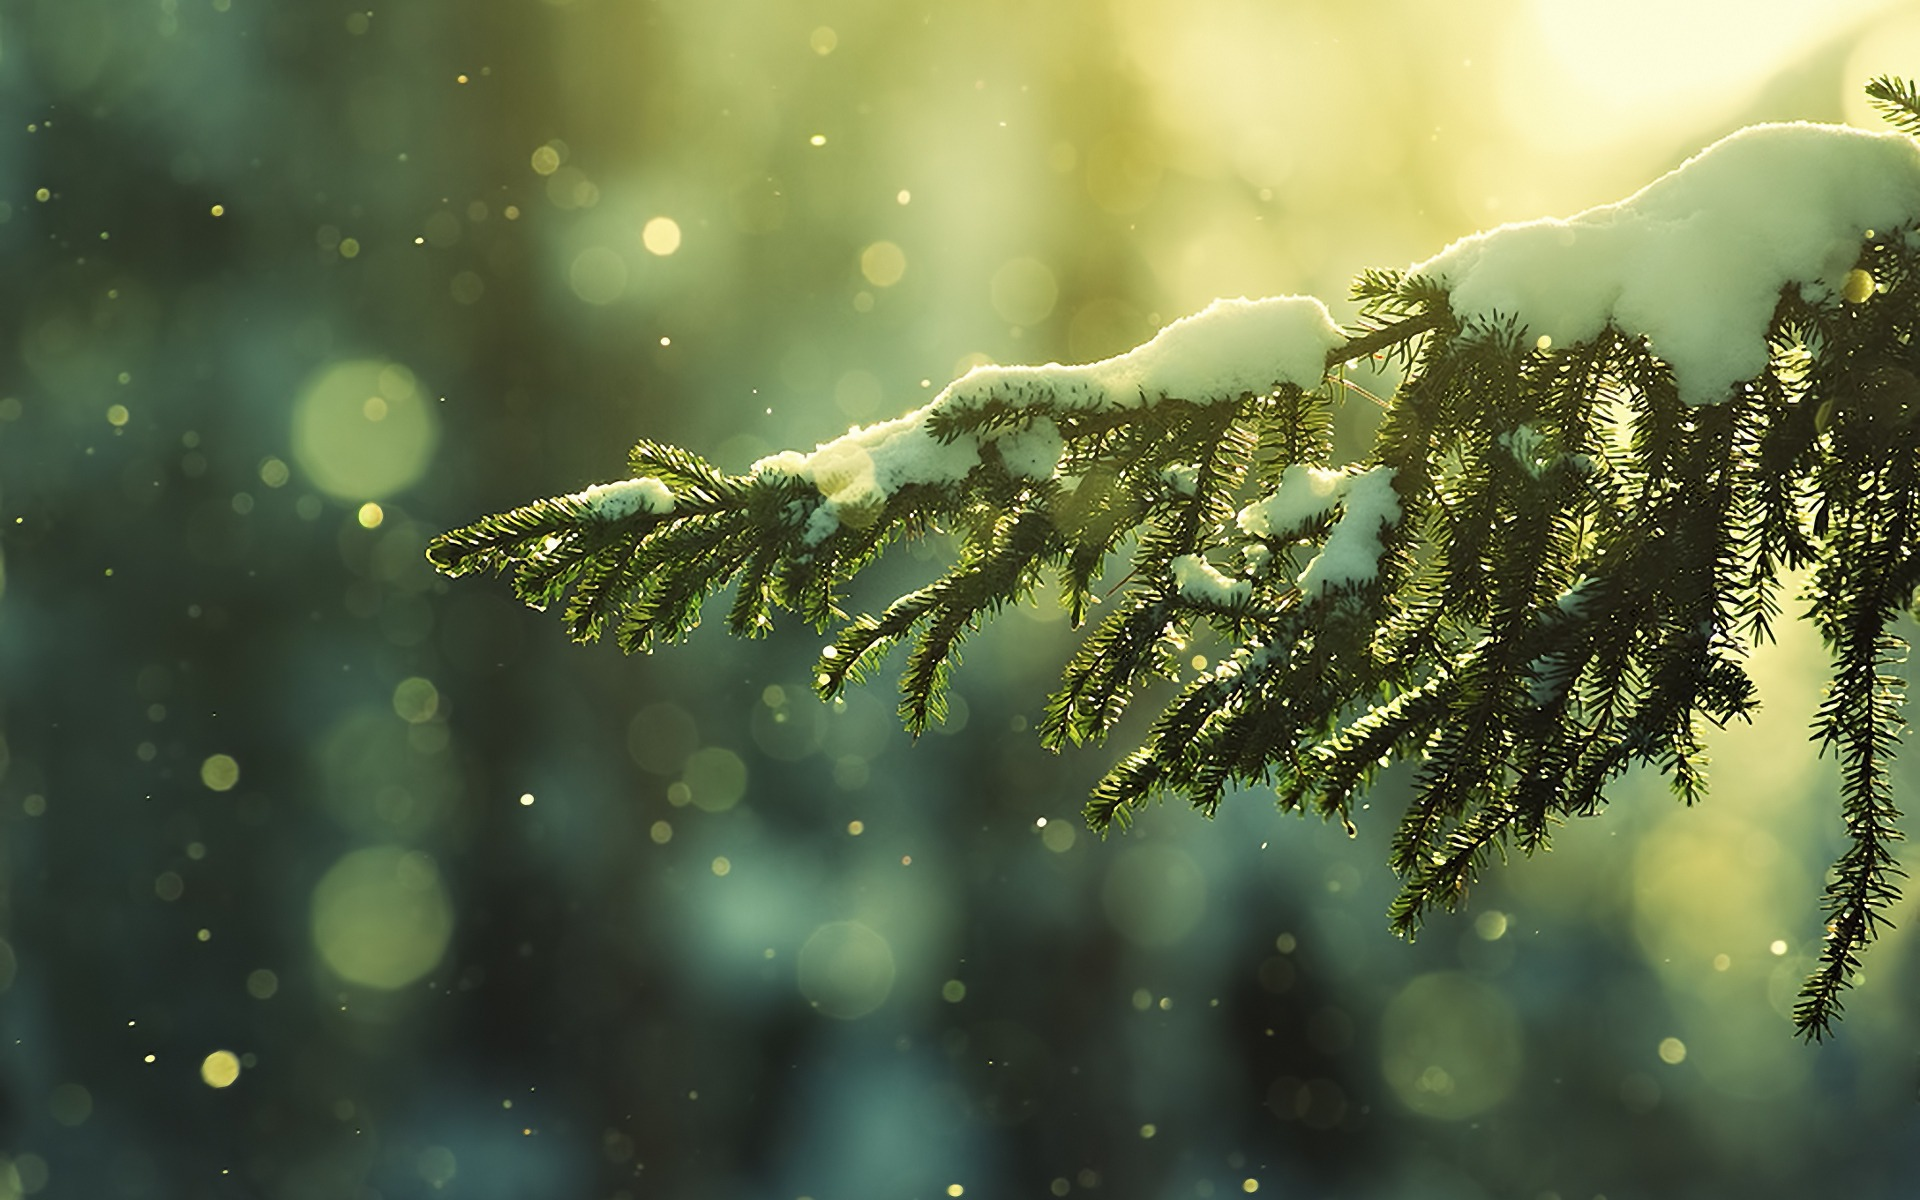 desktop backgrounds winter